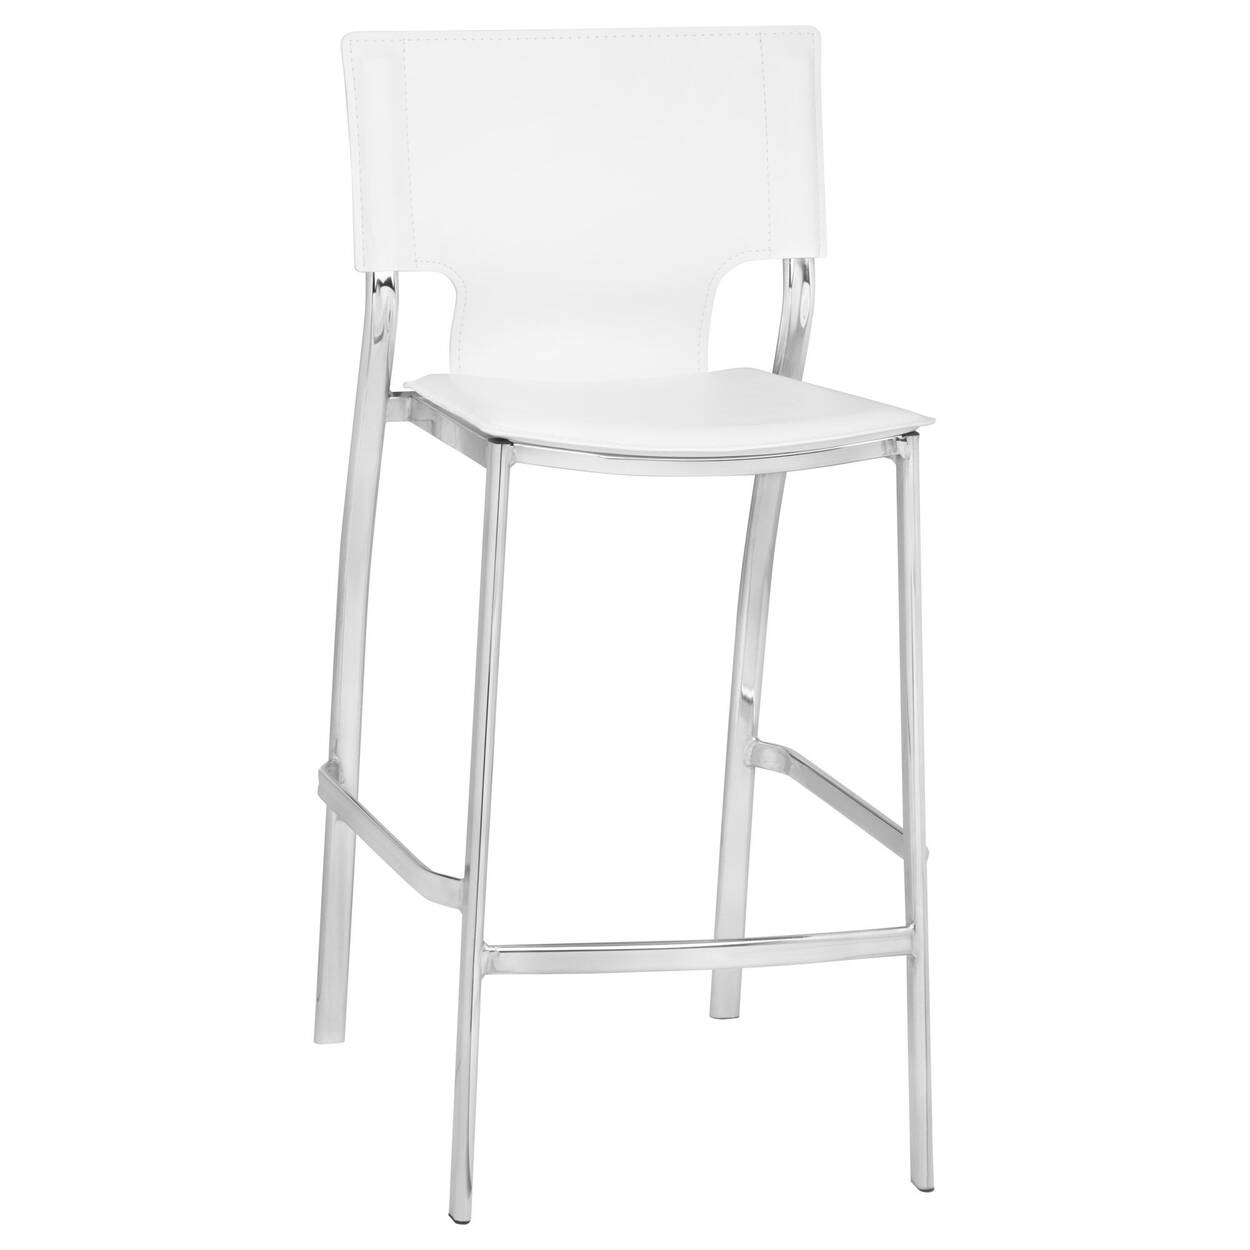 metal amerihome loft bar p stackable stools set style of stool in silver